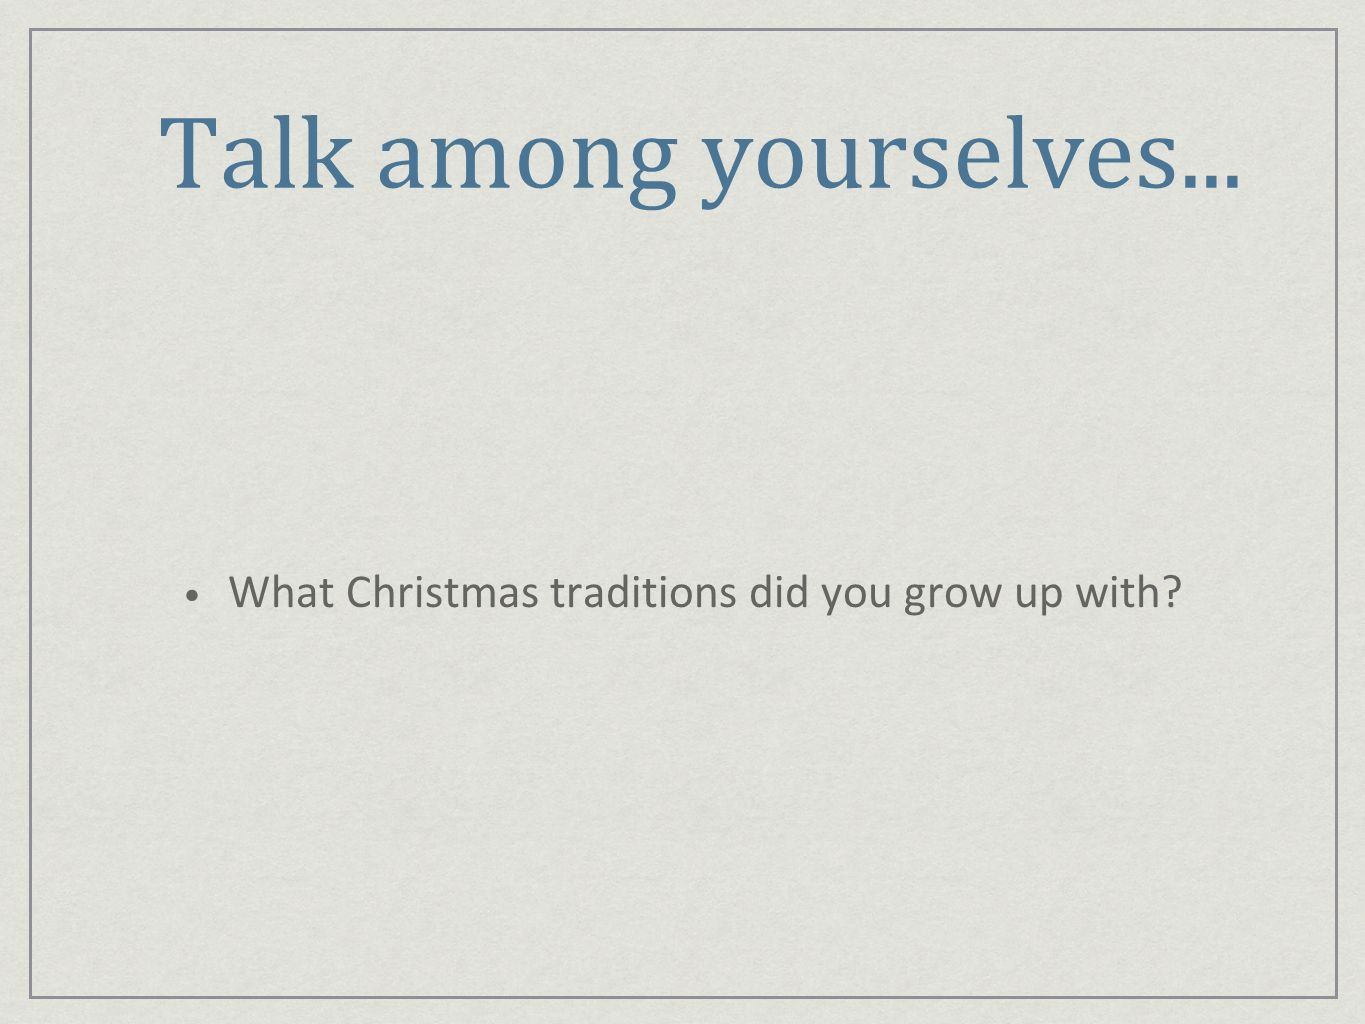 Talk among yourselves... What Christmas traditions did you grow up with